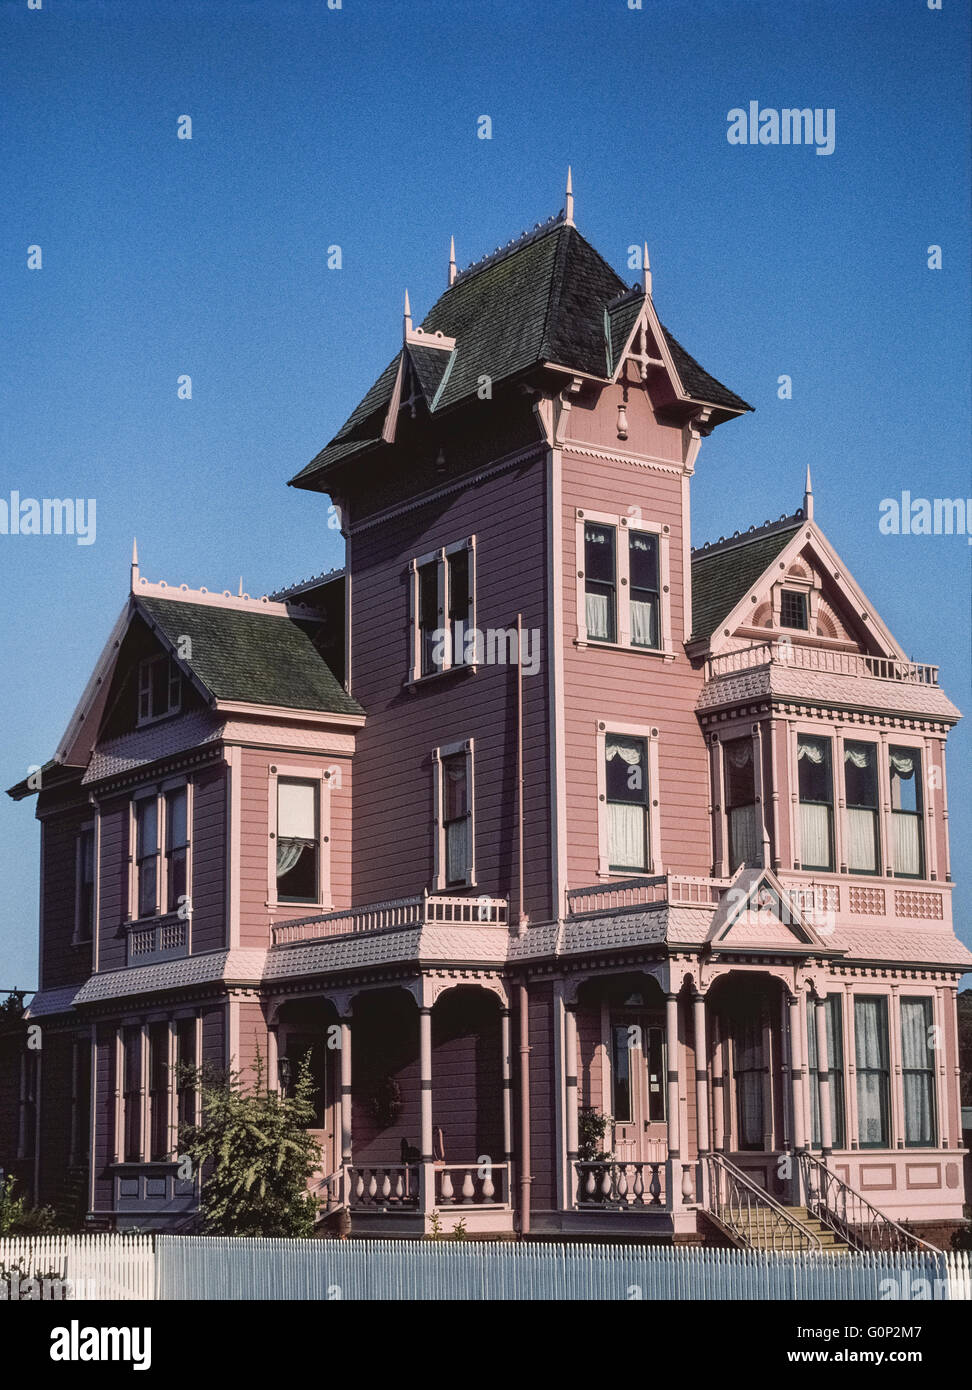 Because of its ornate pink facade and striking architectural style, the Rose Victorian Inn was a bright landmark - Stock Image